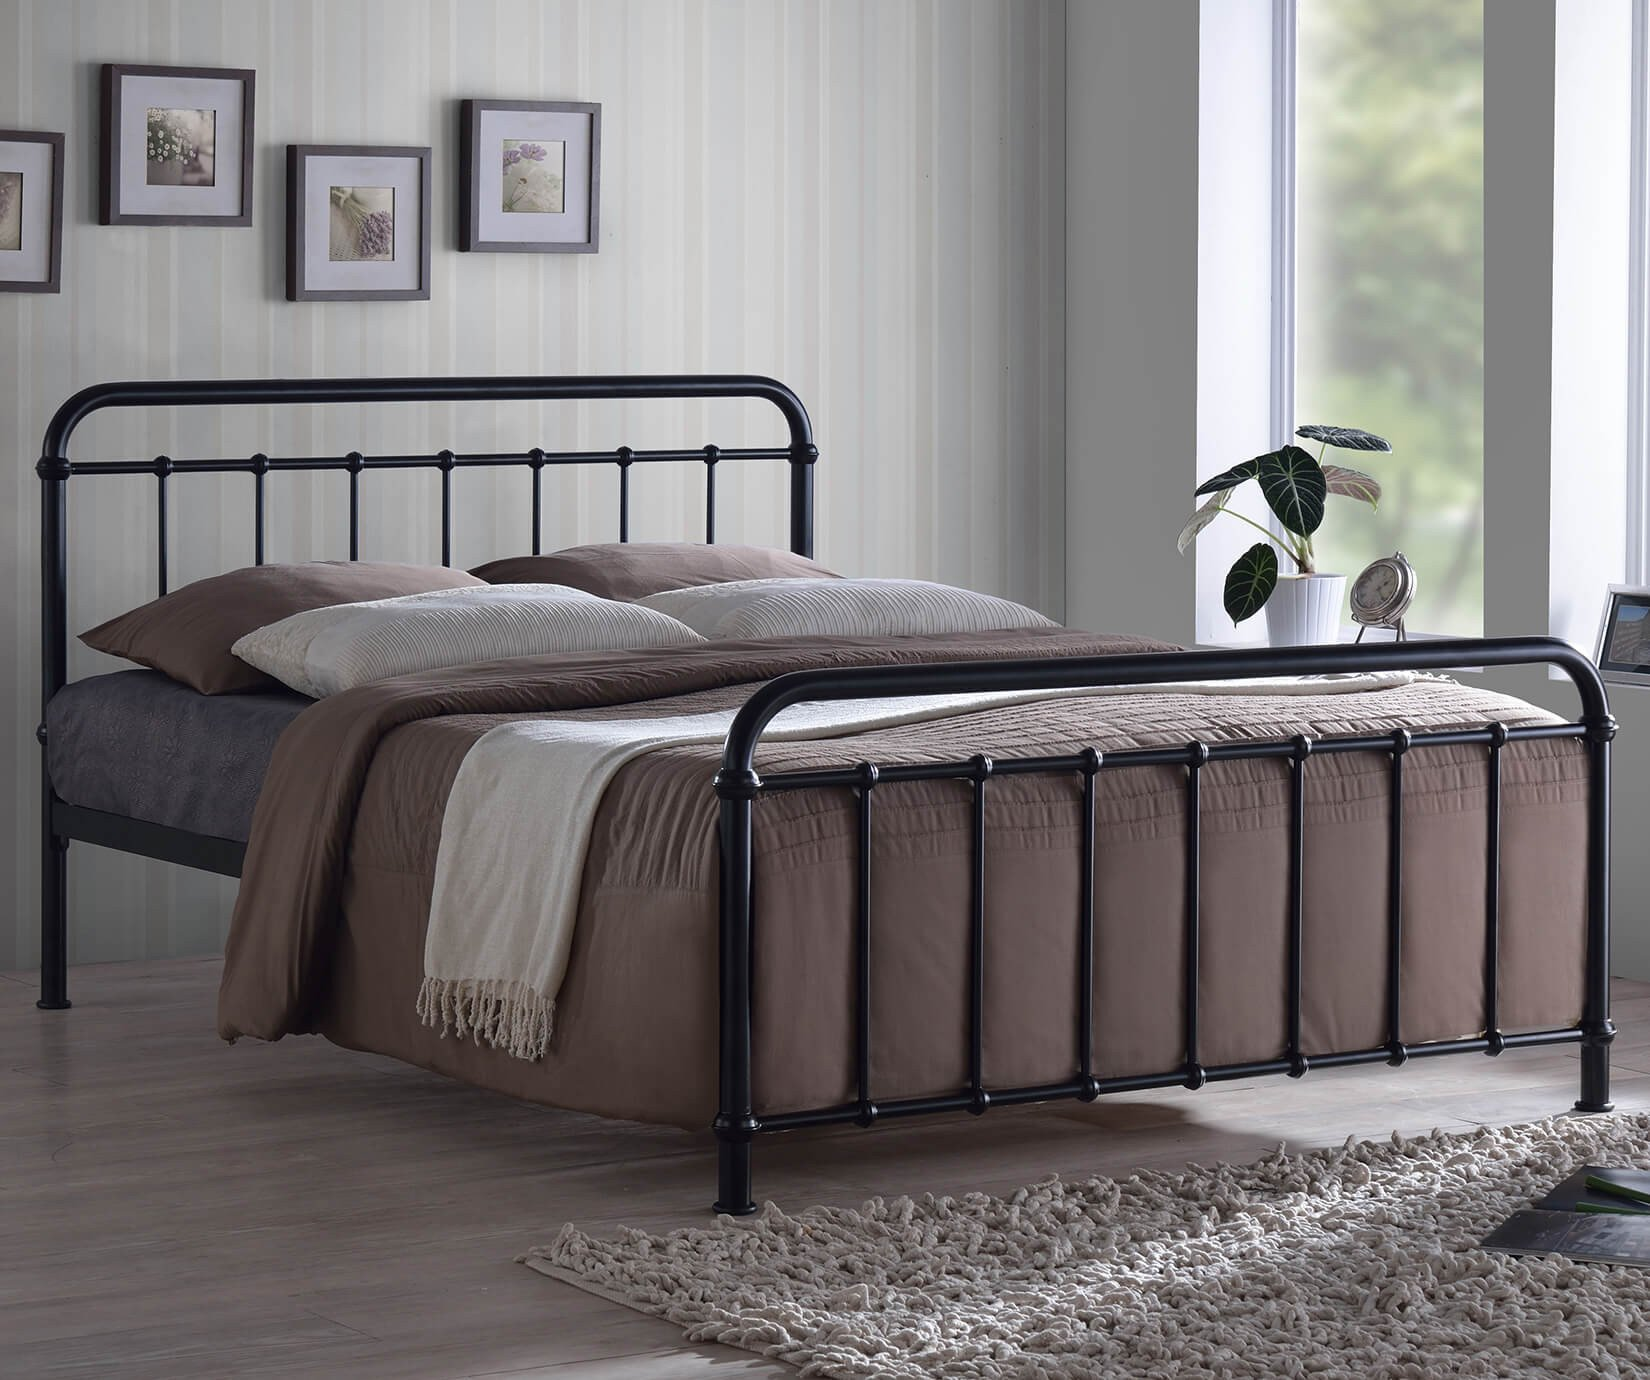 Double Malta Black Bed Frame Dublin Beds